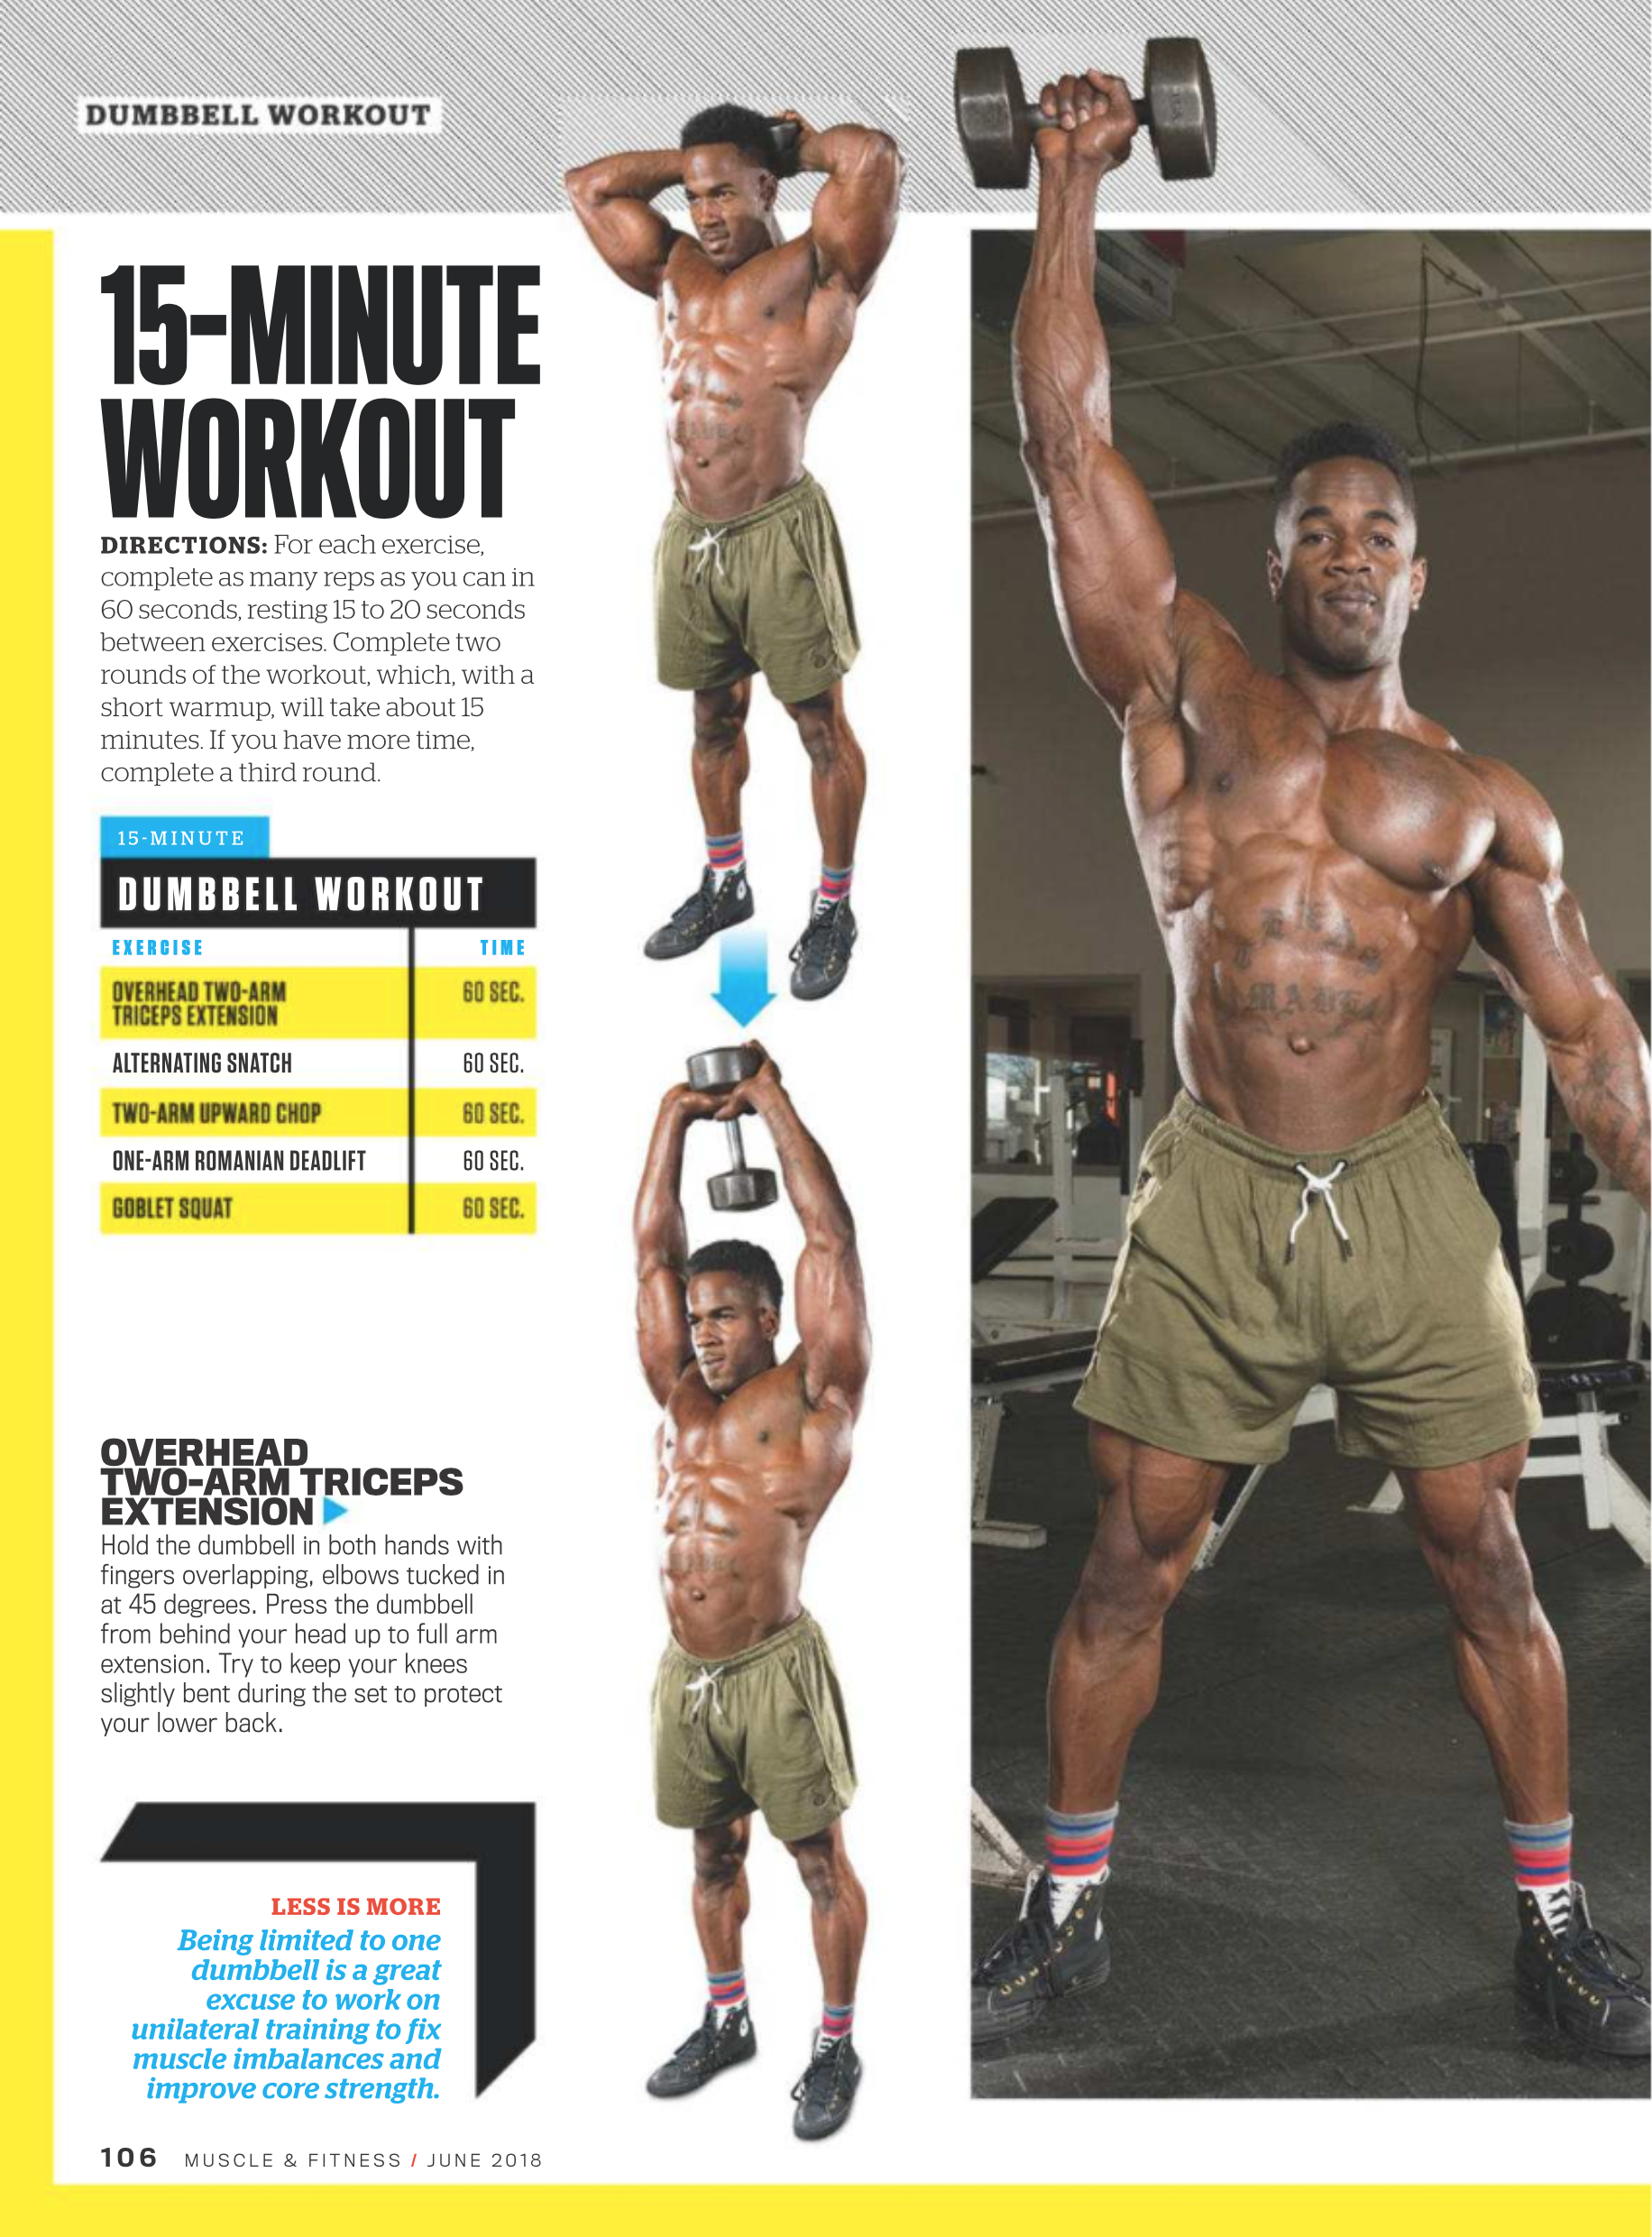 One-Tool Workout - Jim Ryno - Dumbbell - M&F - 7.png